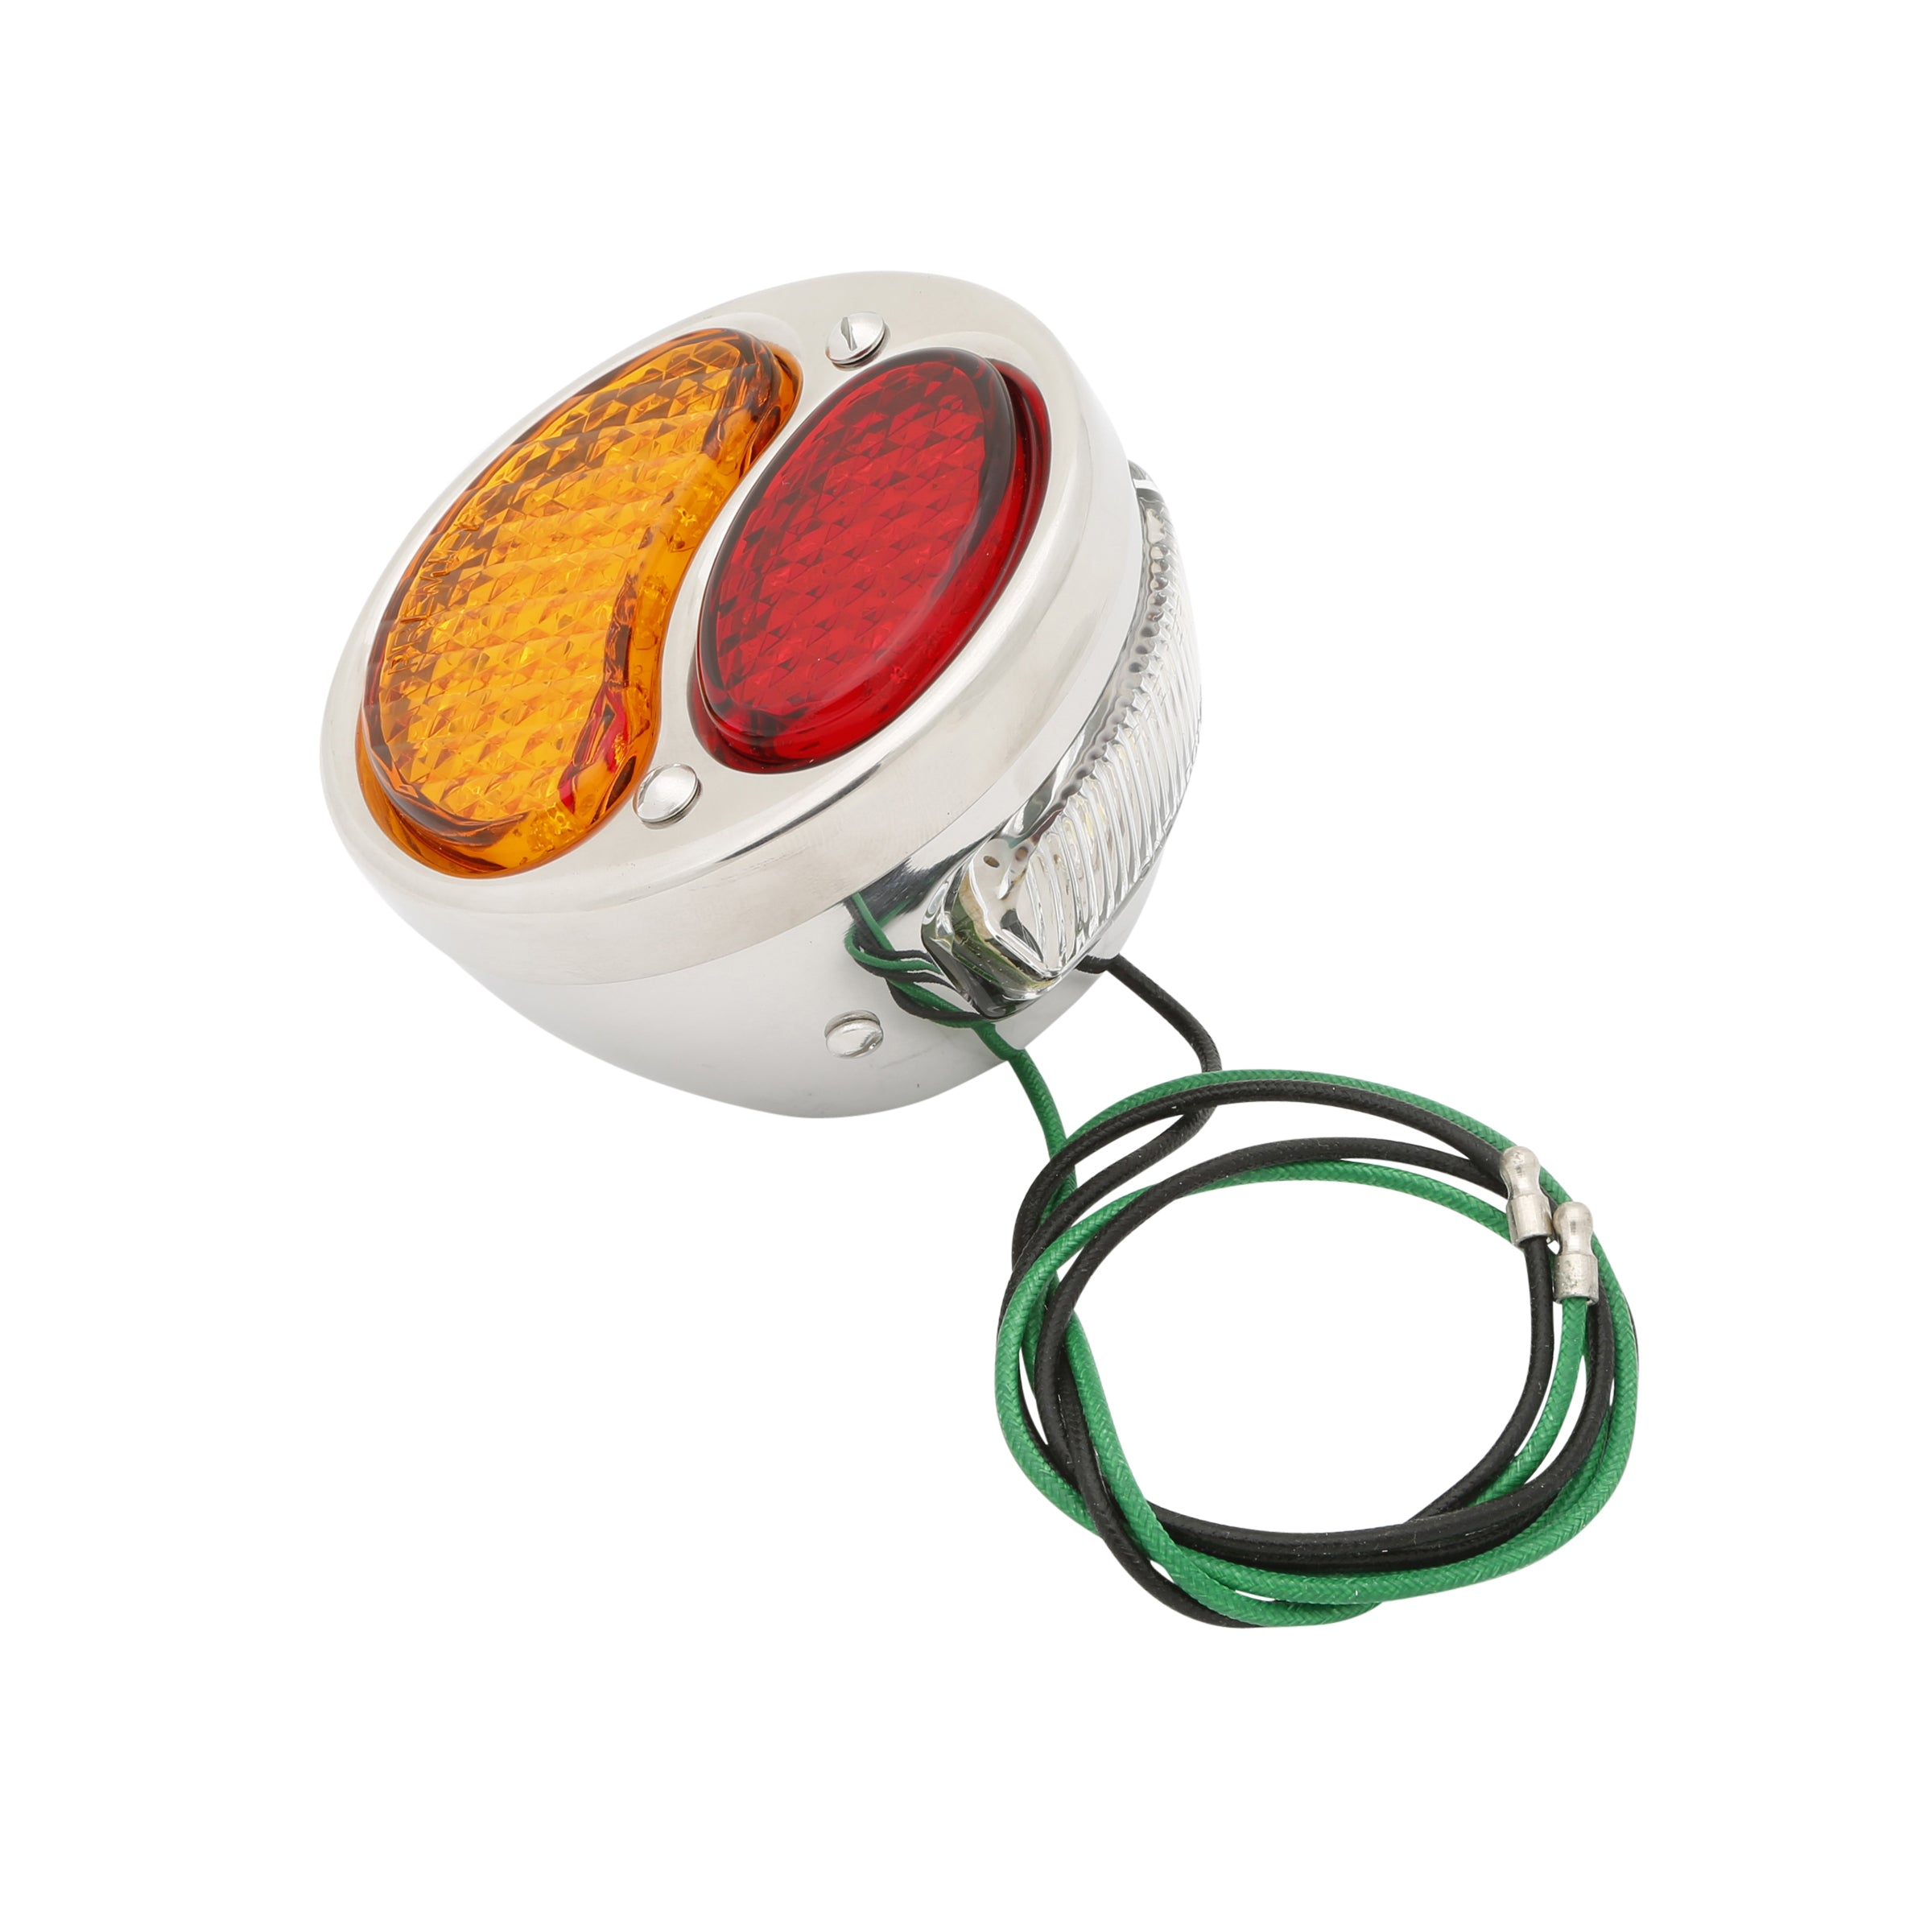 Taillight (LED 6 Volt Red/Amber Lens) • 1928-31 Model A Ford Stainless Steel Left